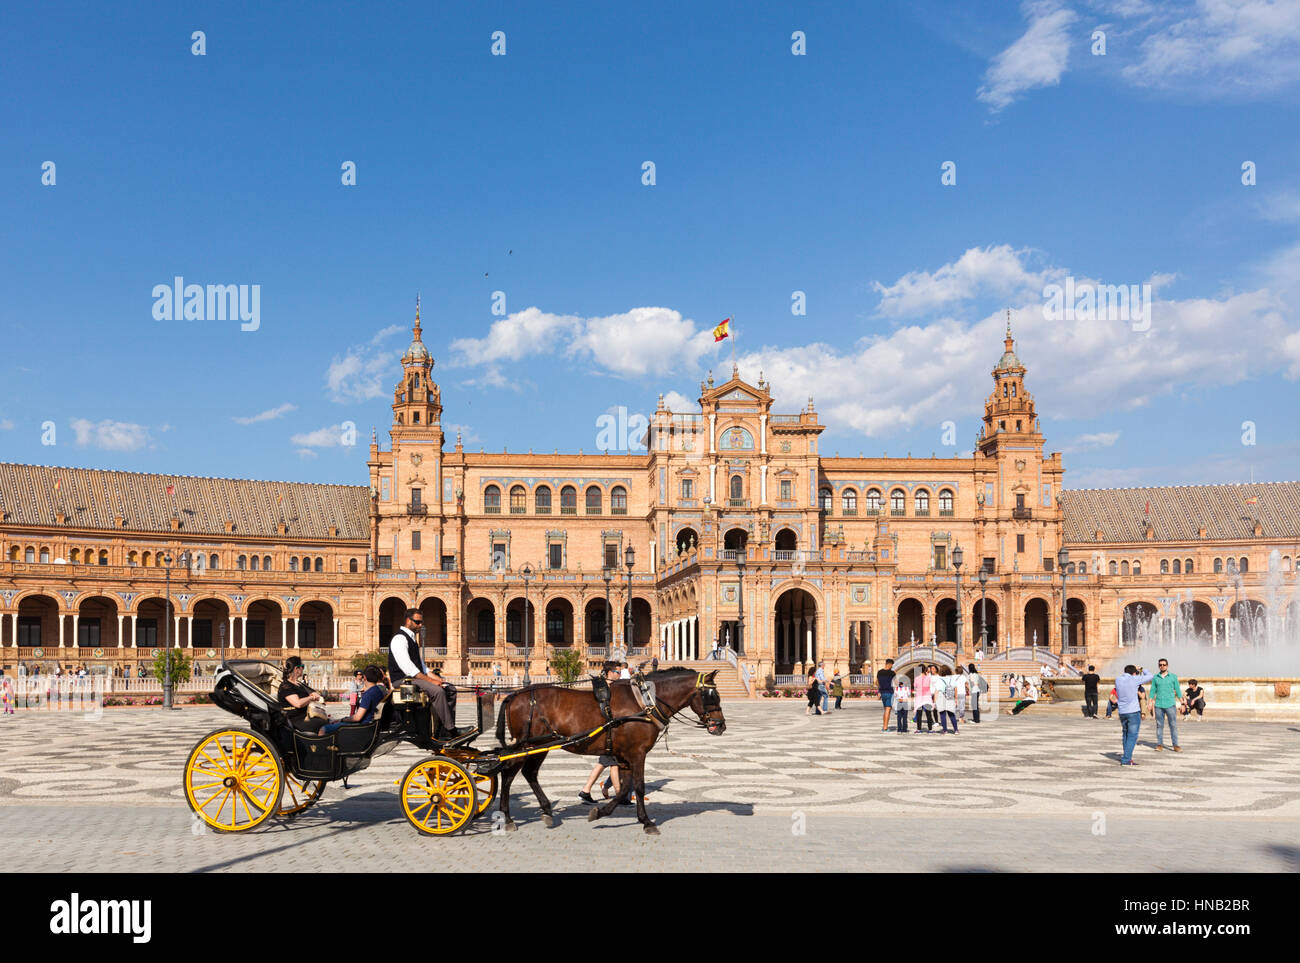 Seville, Spain - April 30, 2016: A sunny day at Plaza de Espana, tourists visiting the famous square, a horse-drawn - Stock Image